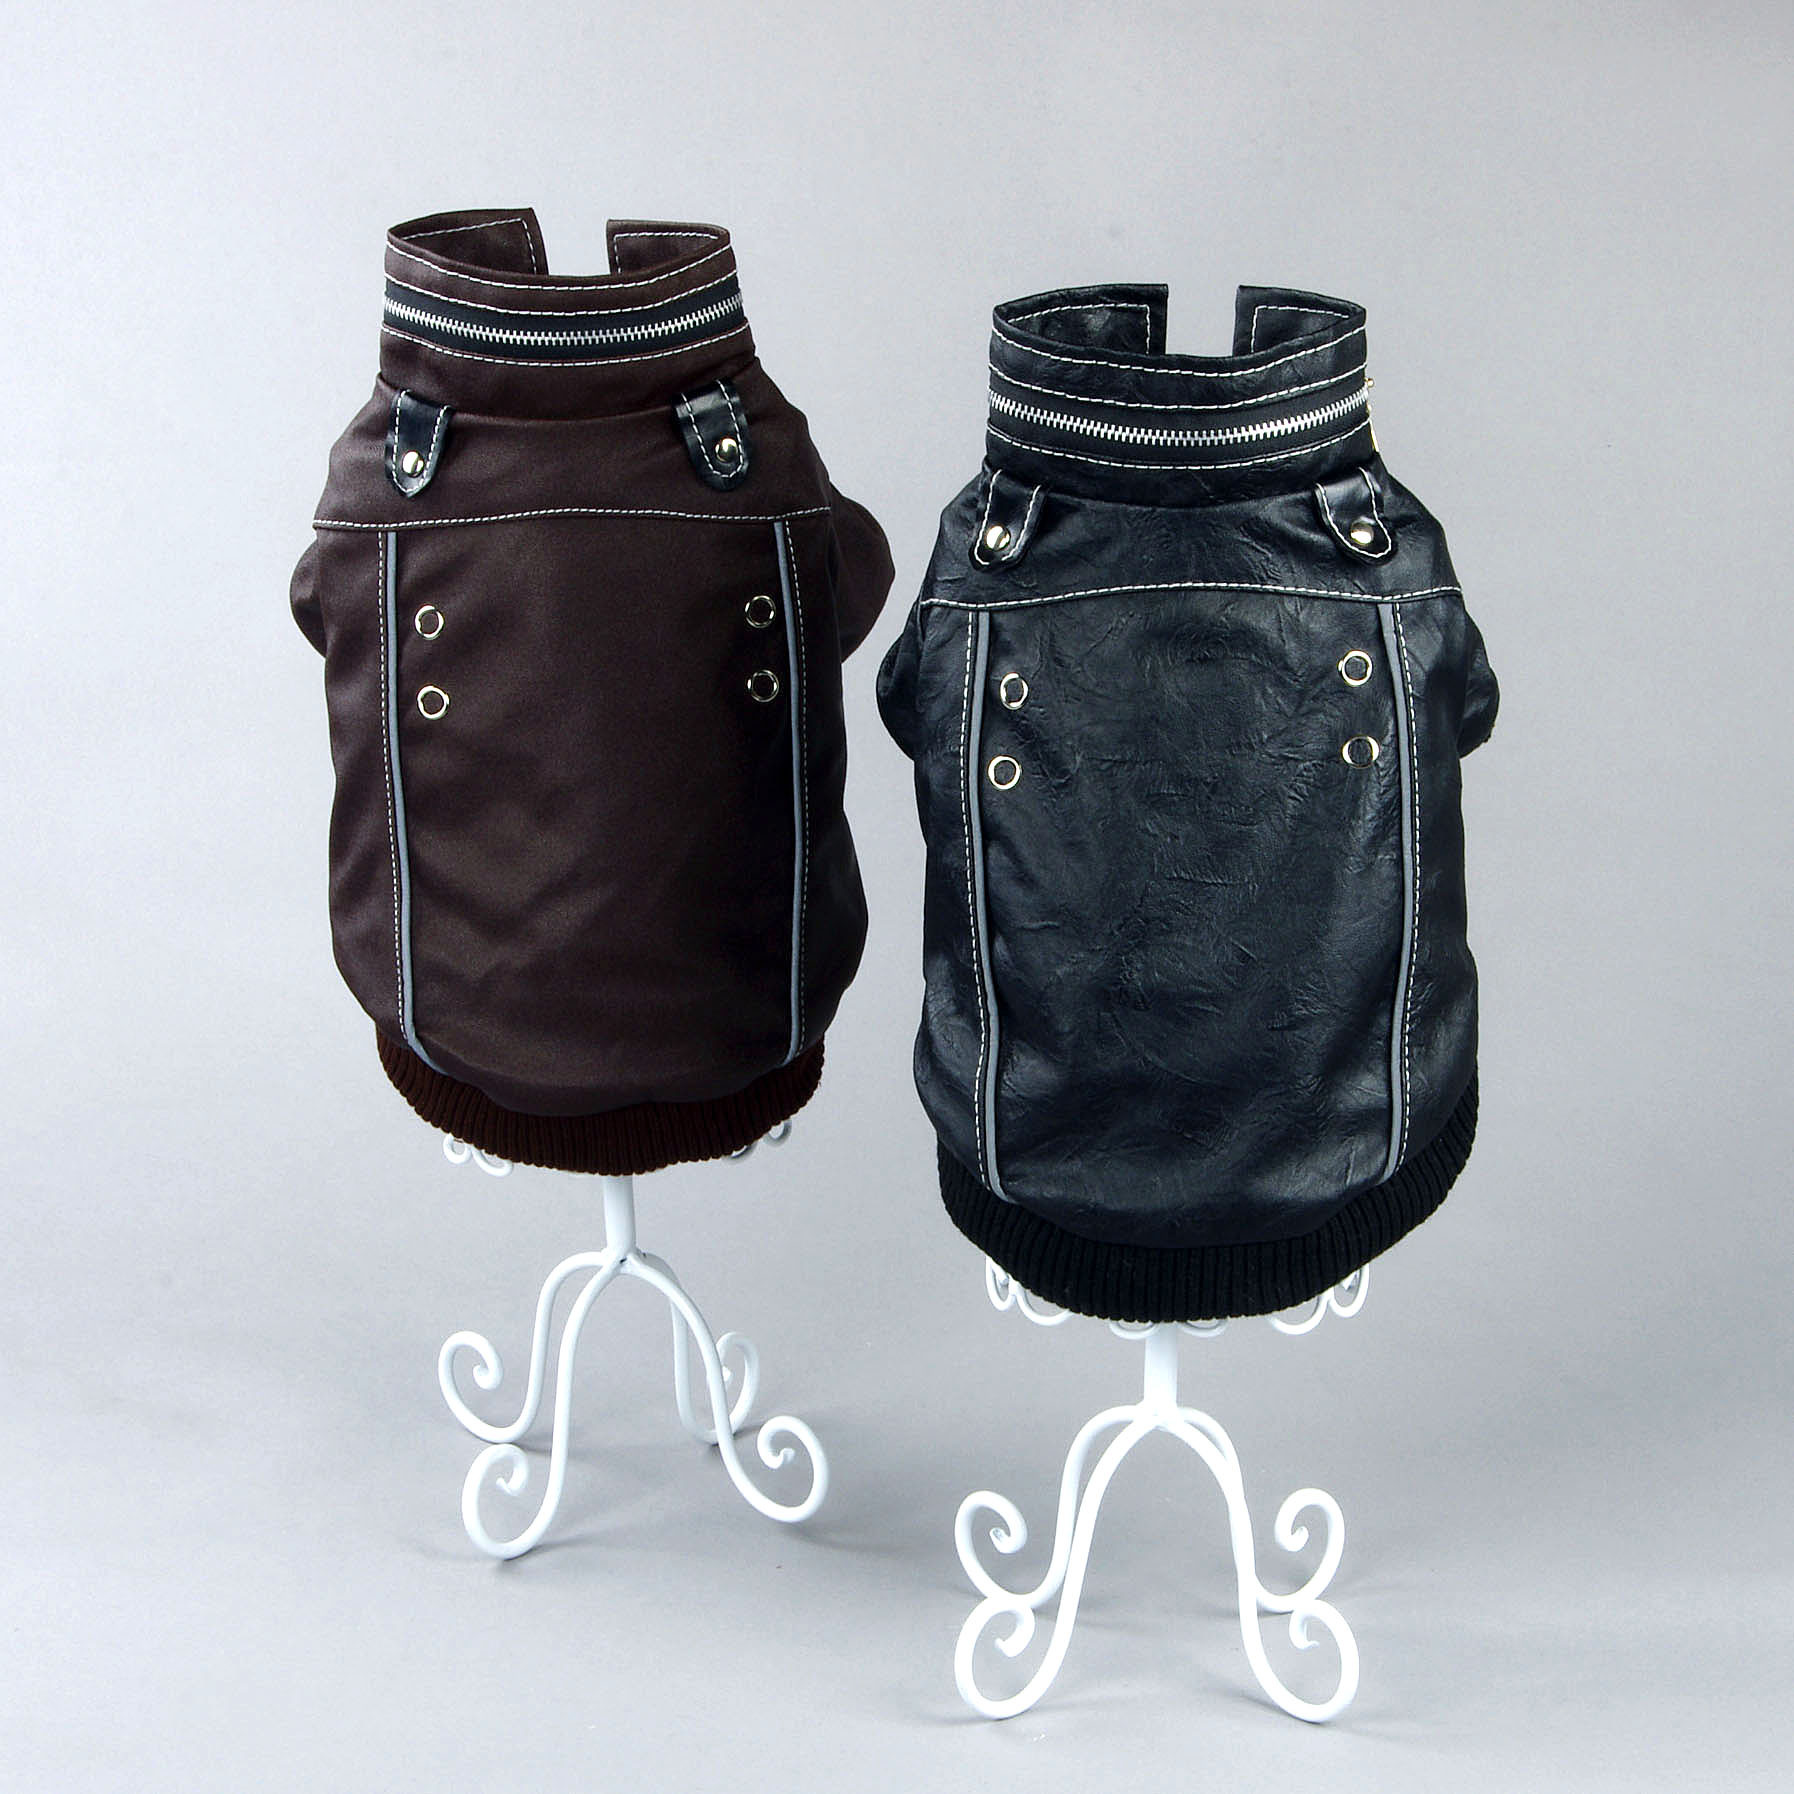 Leather jacket for dogs - Pet Clothes British Style Leather Jacket Winter Jacket Pet Clearing Price China Mainland